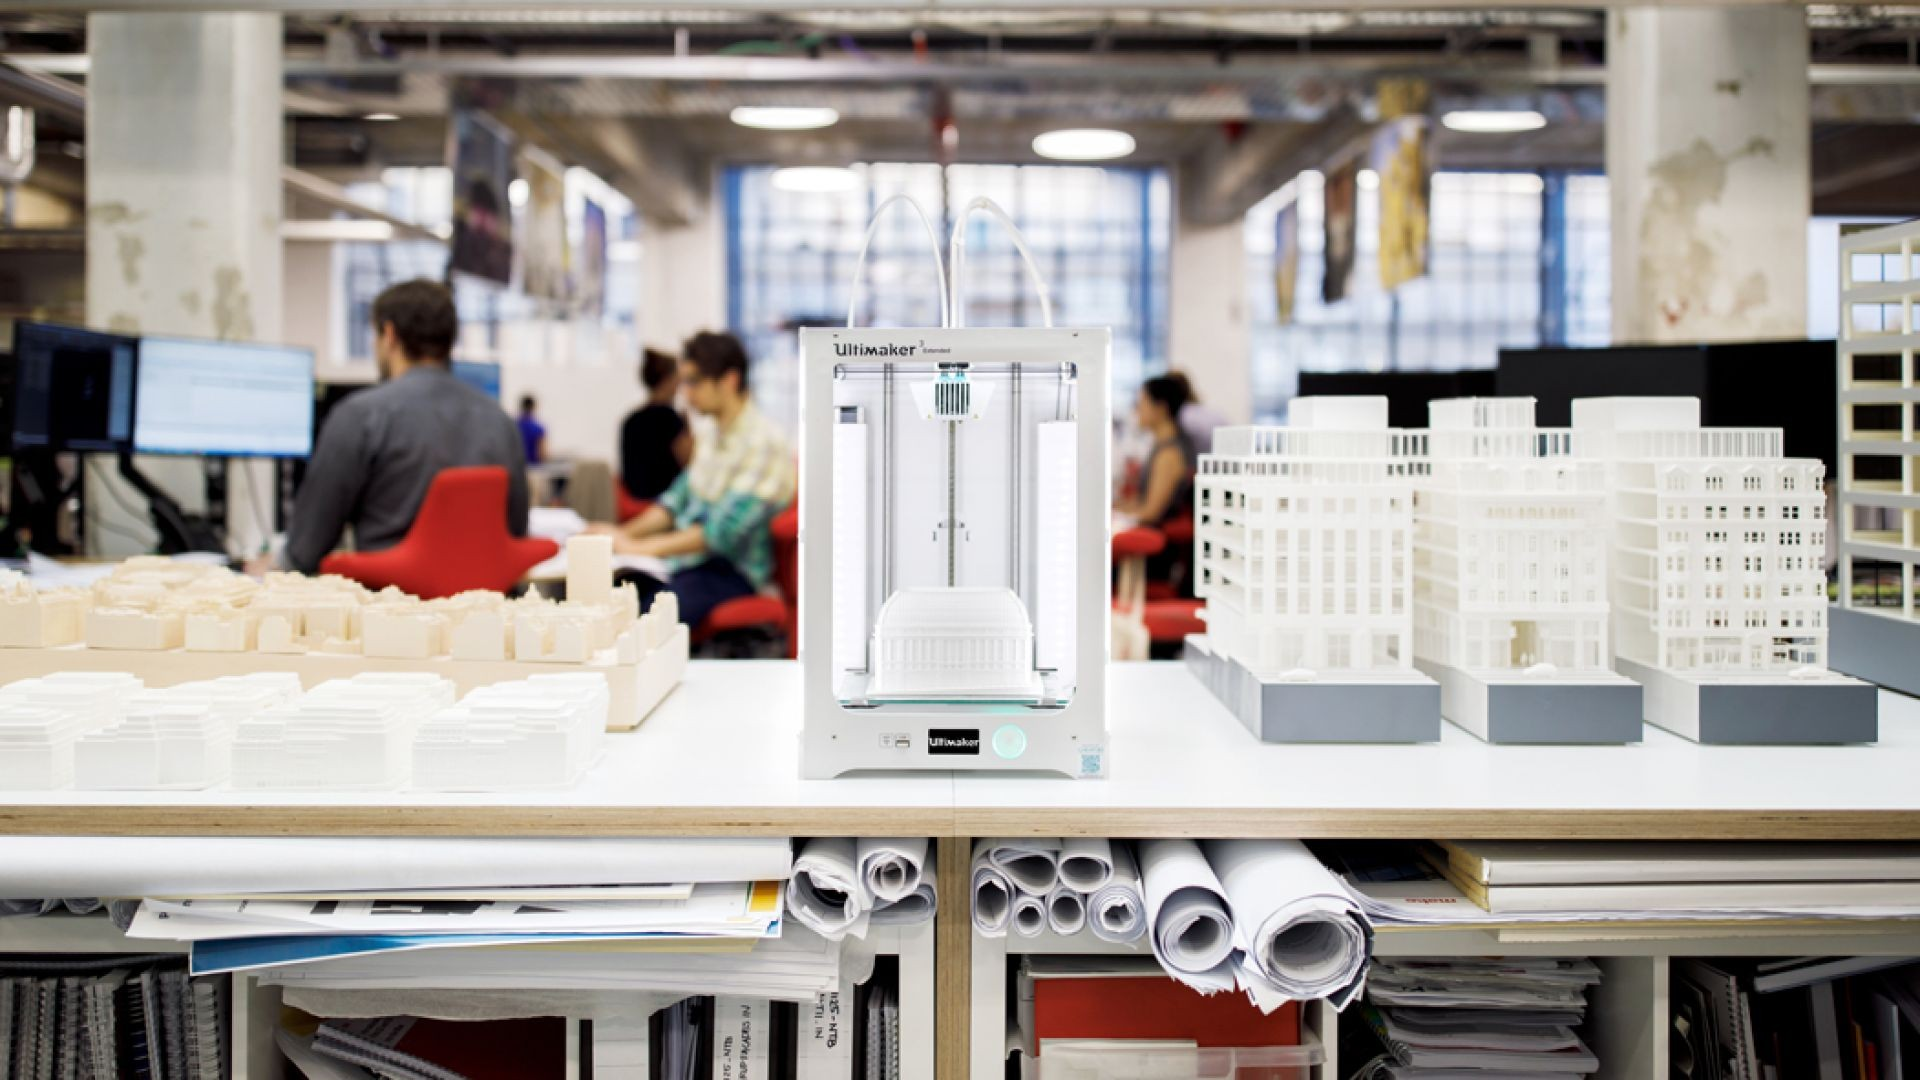 Ultimaker announced as leading IDC Innovator